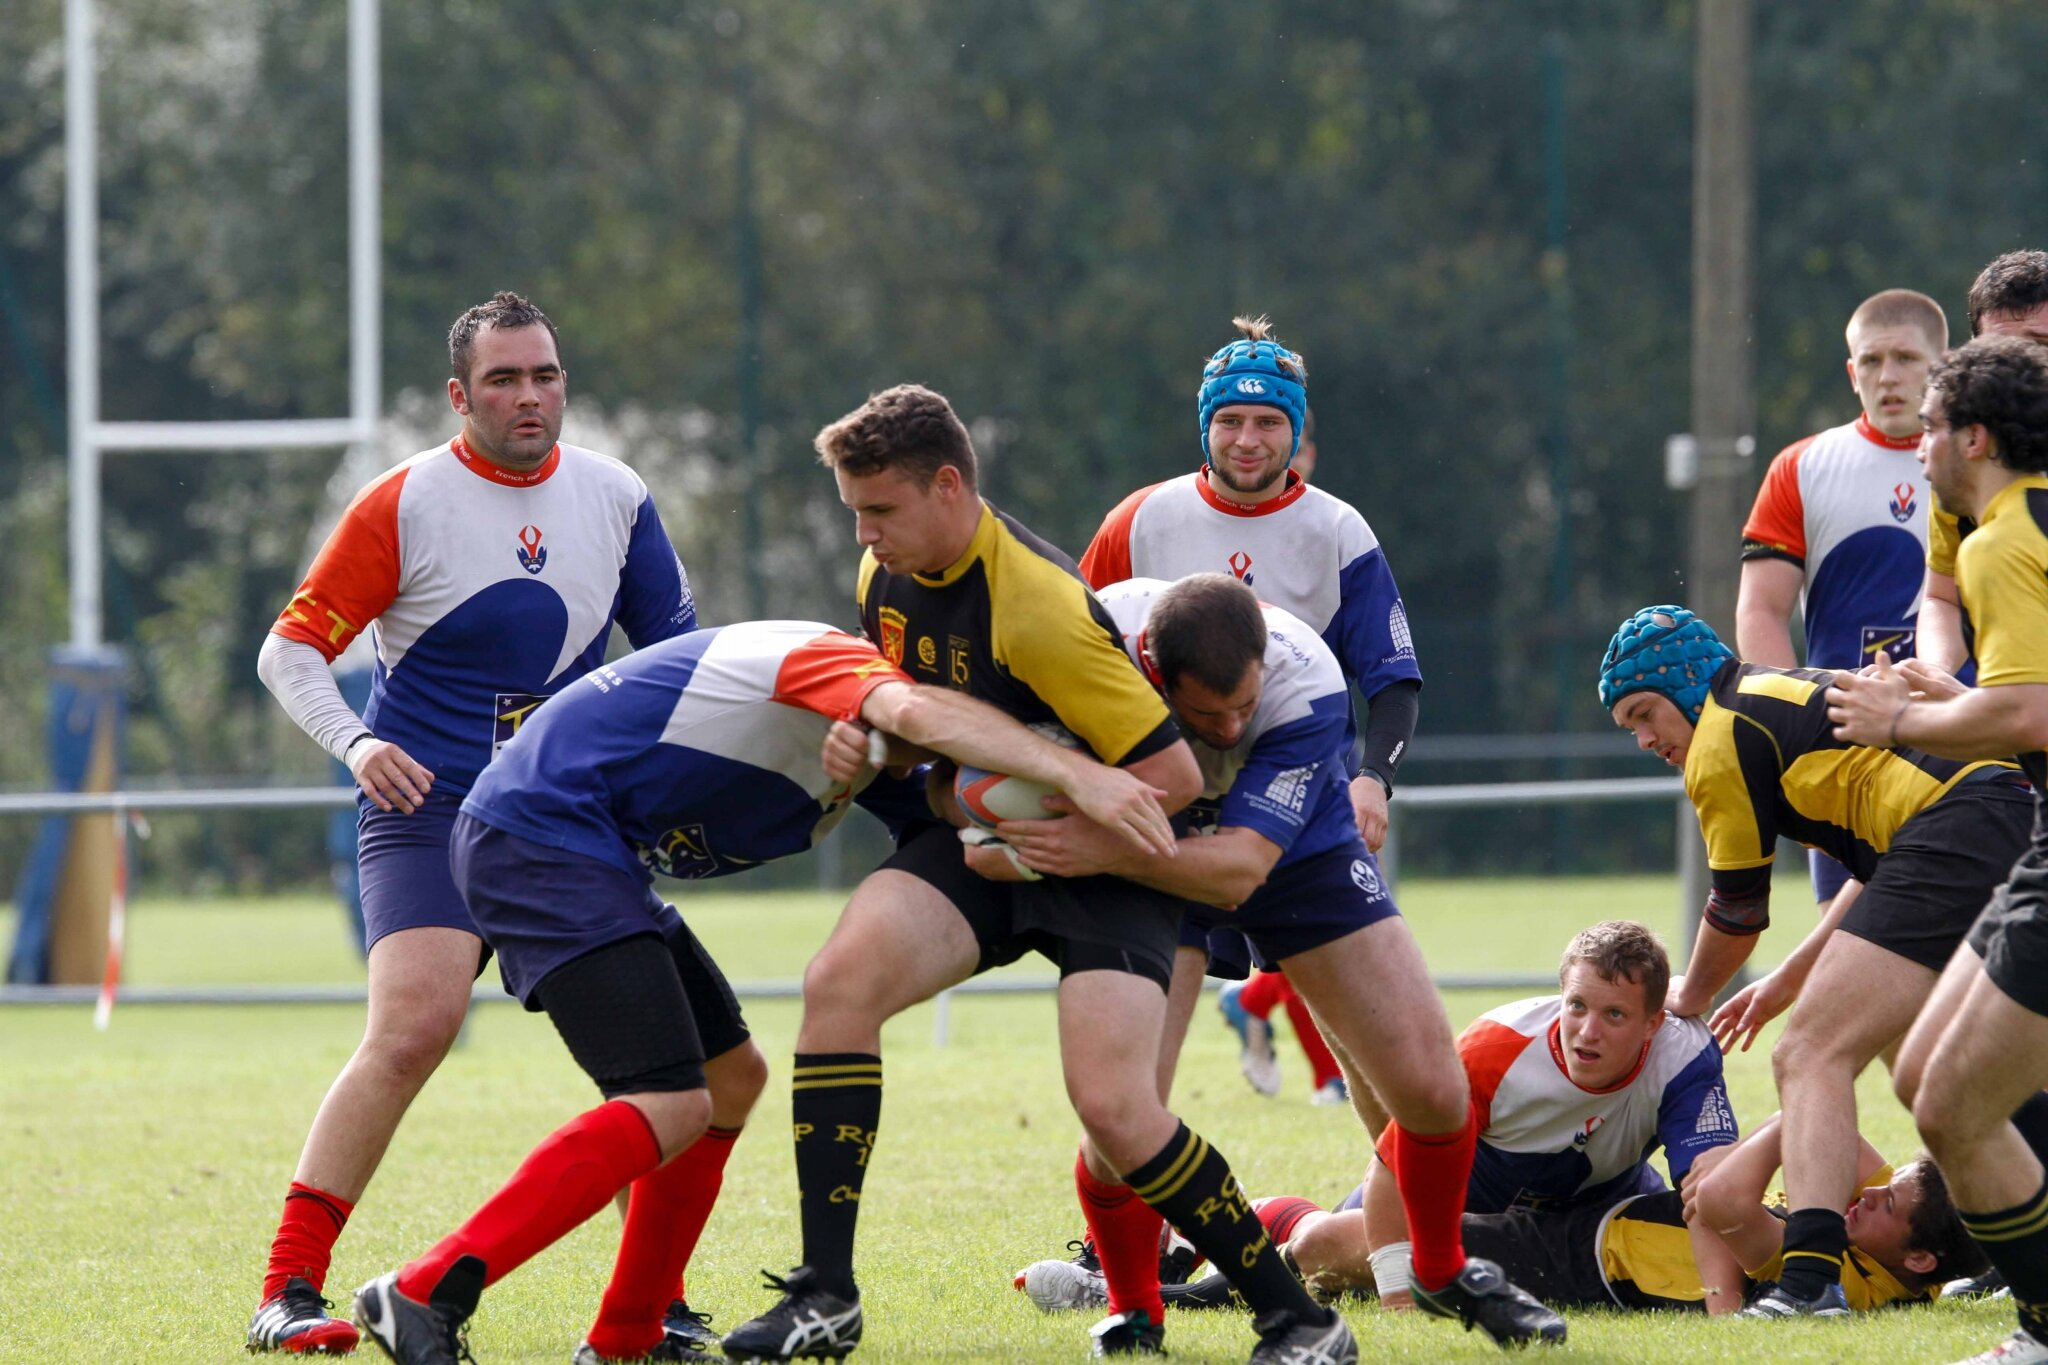 RCT-RCP15-R18